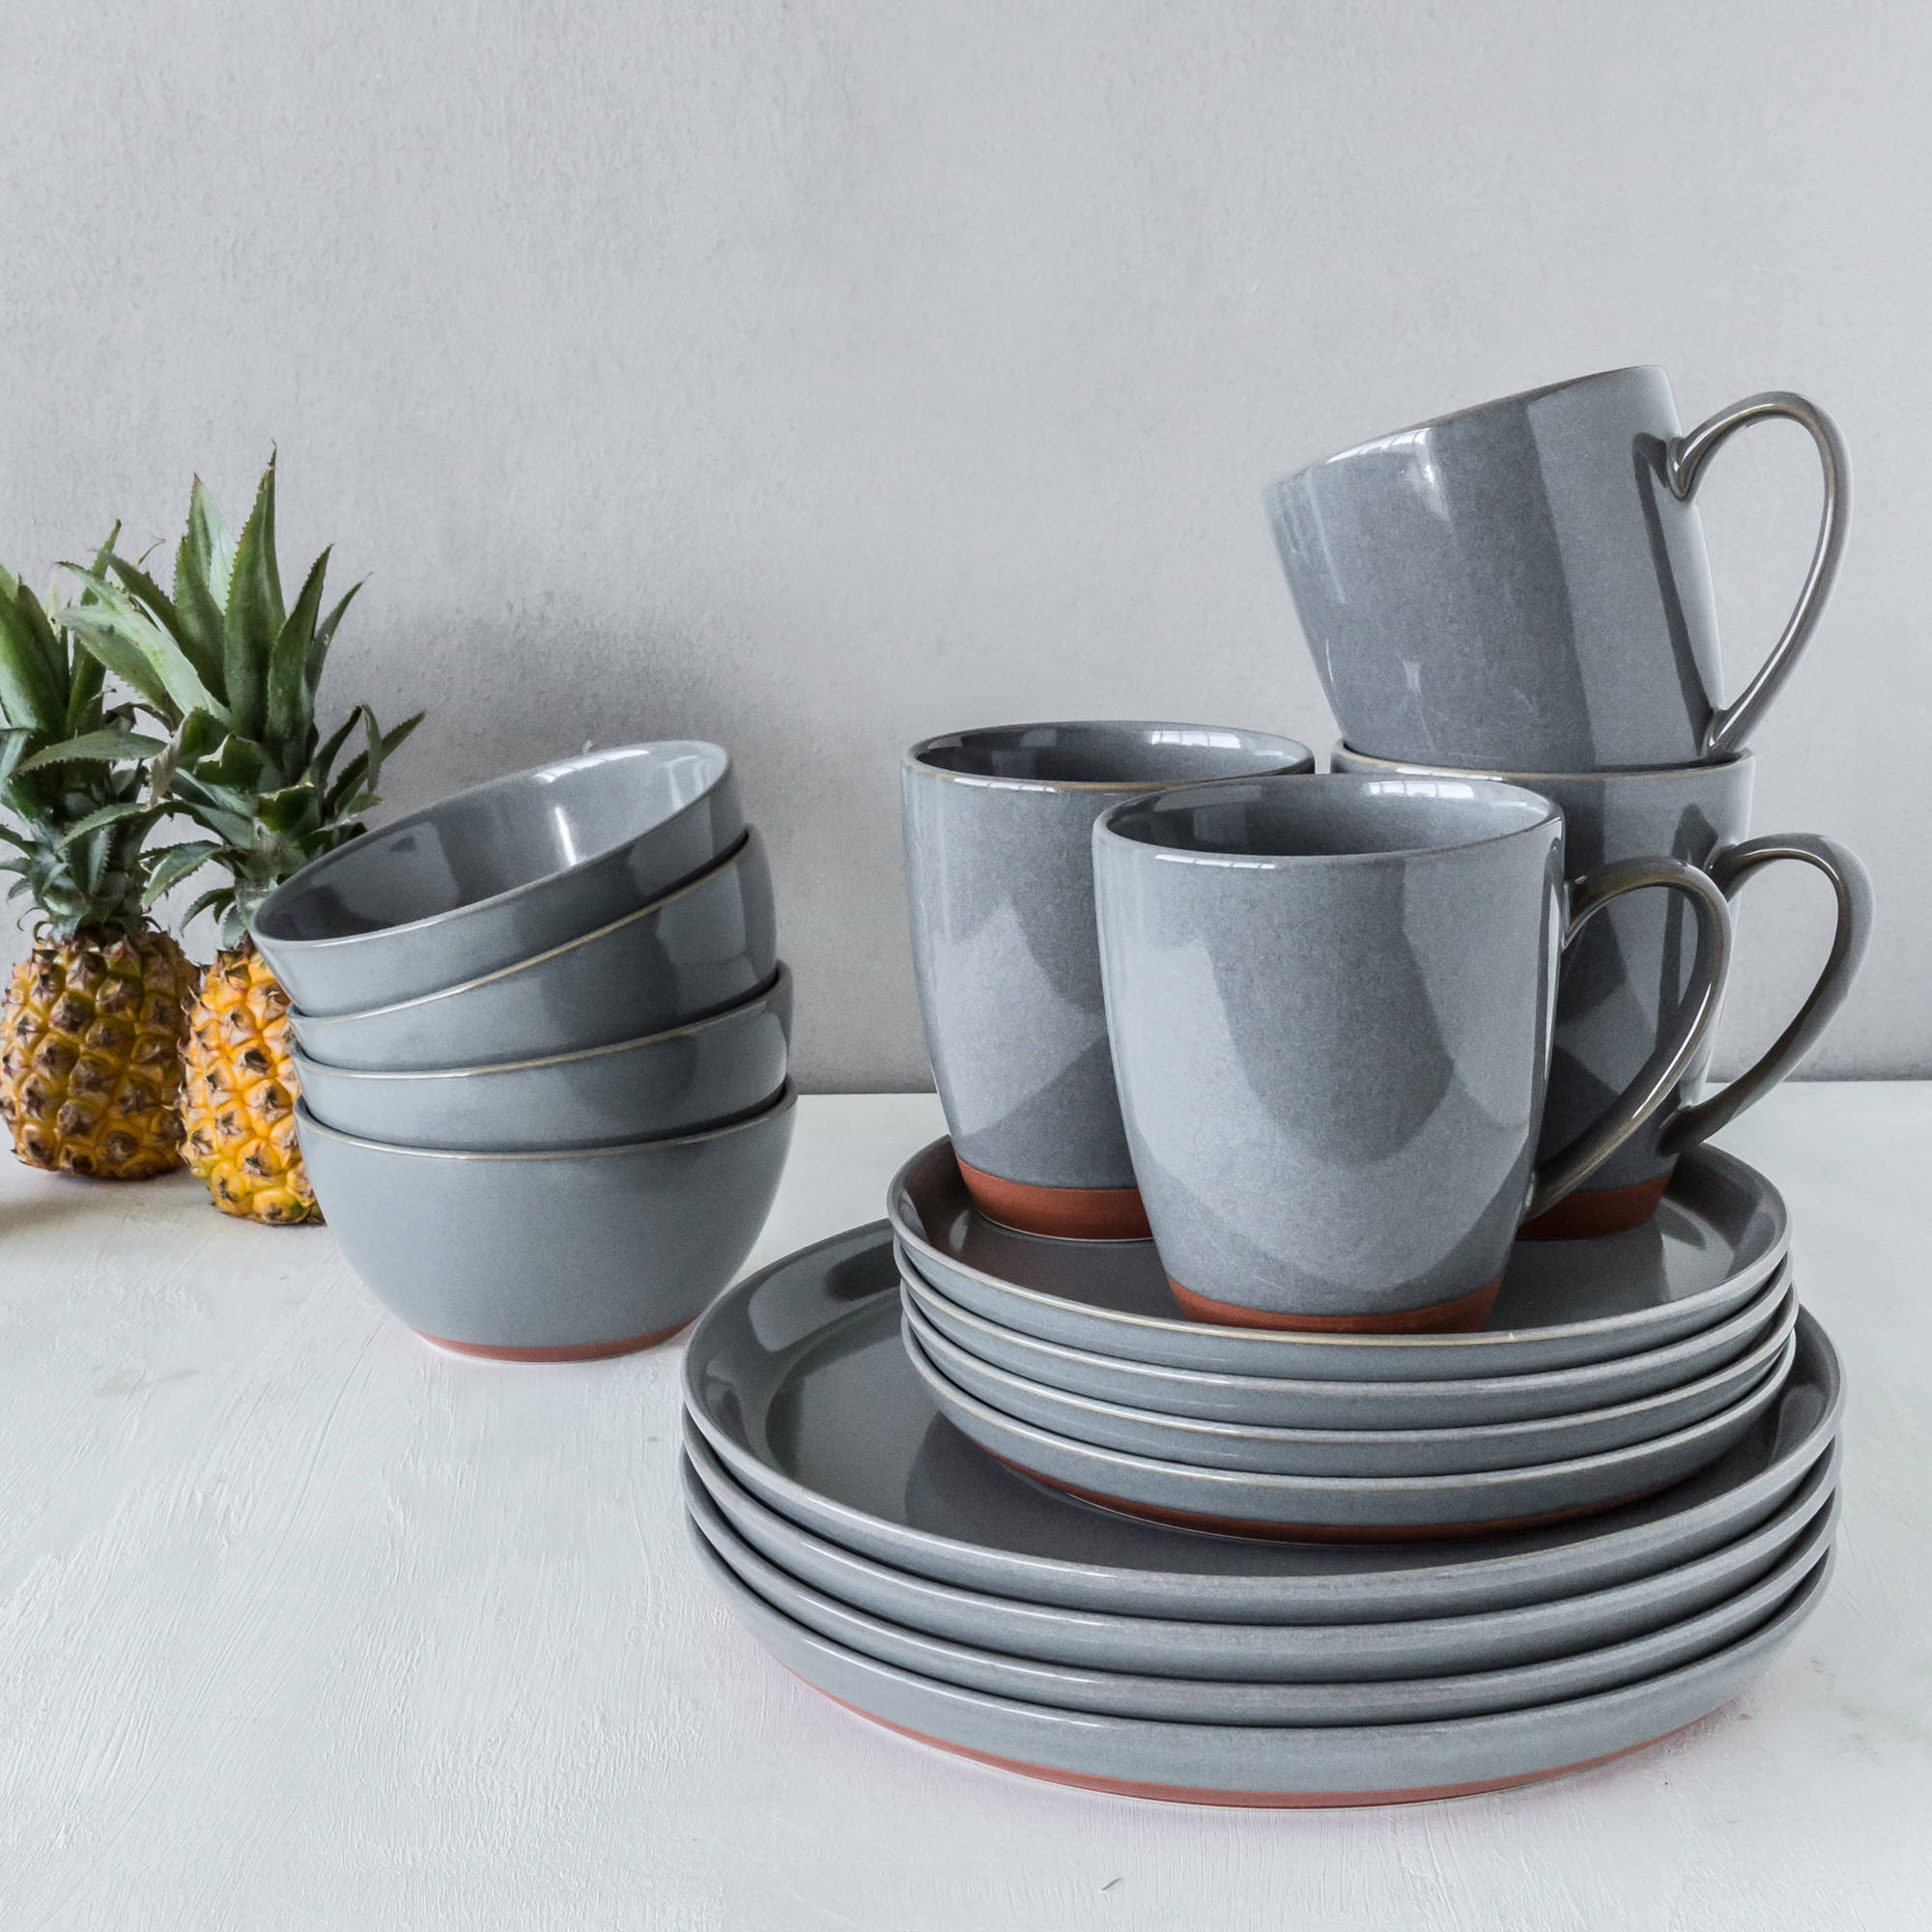 Better Homes and Gardens Claybrooke Stoneware Gray 16-Piece Dinnerware Set